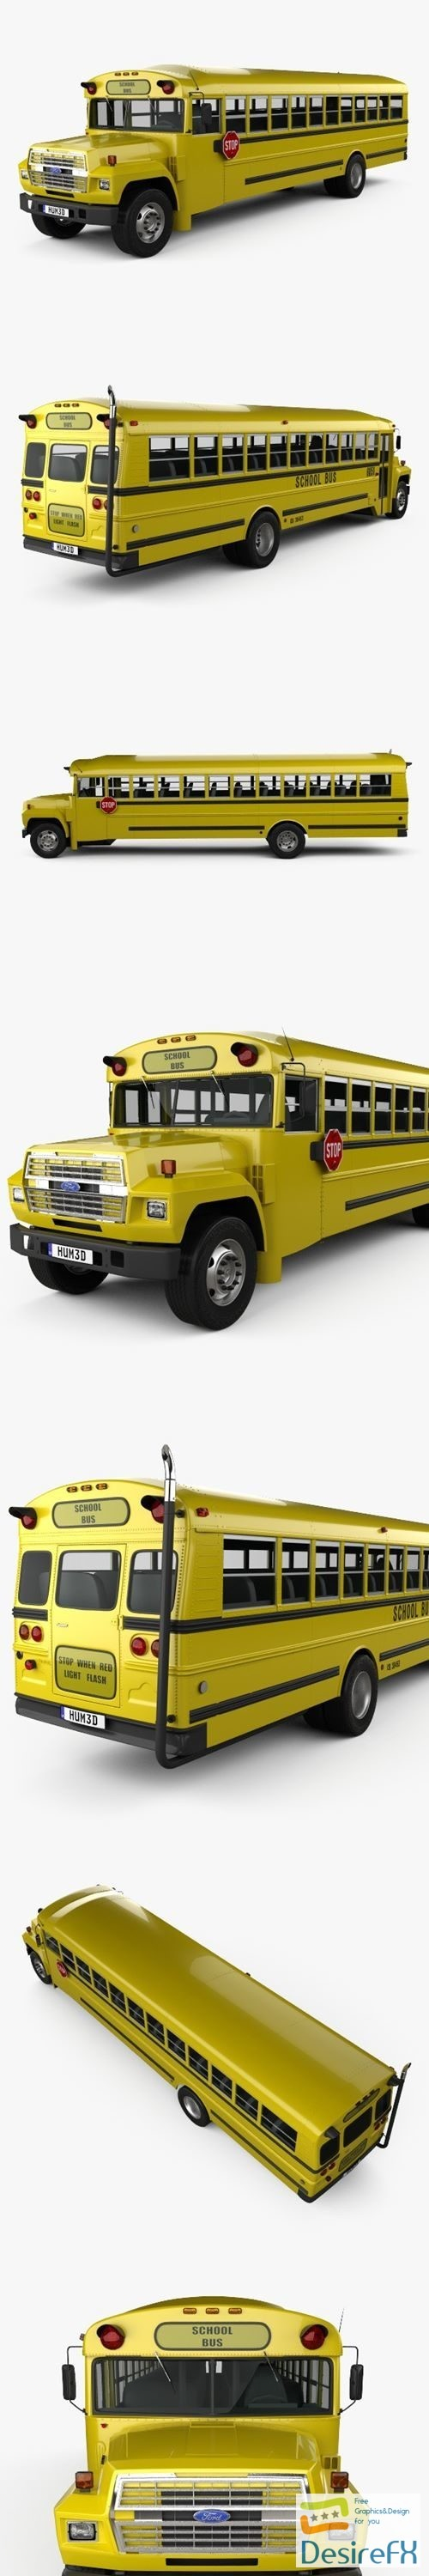 3d-models - Ford B-700 Thomas Conventional School Bus 1984 3D Model